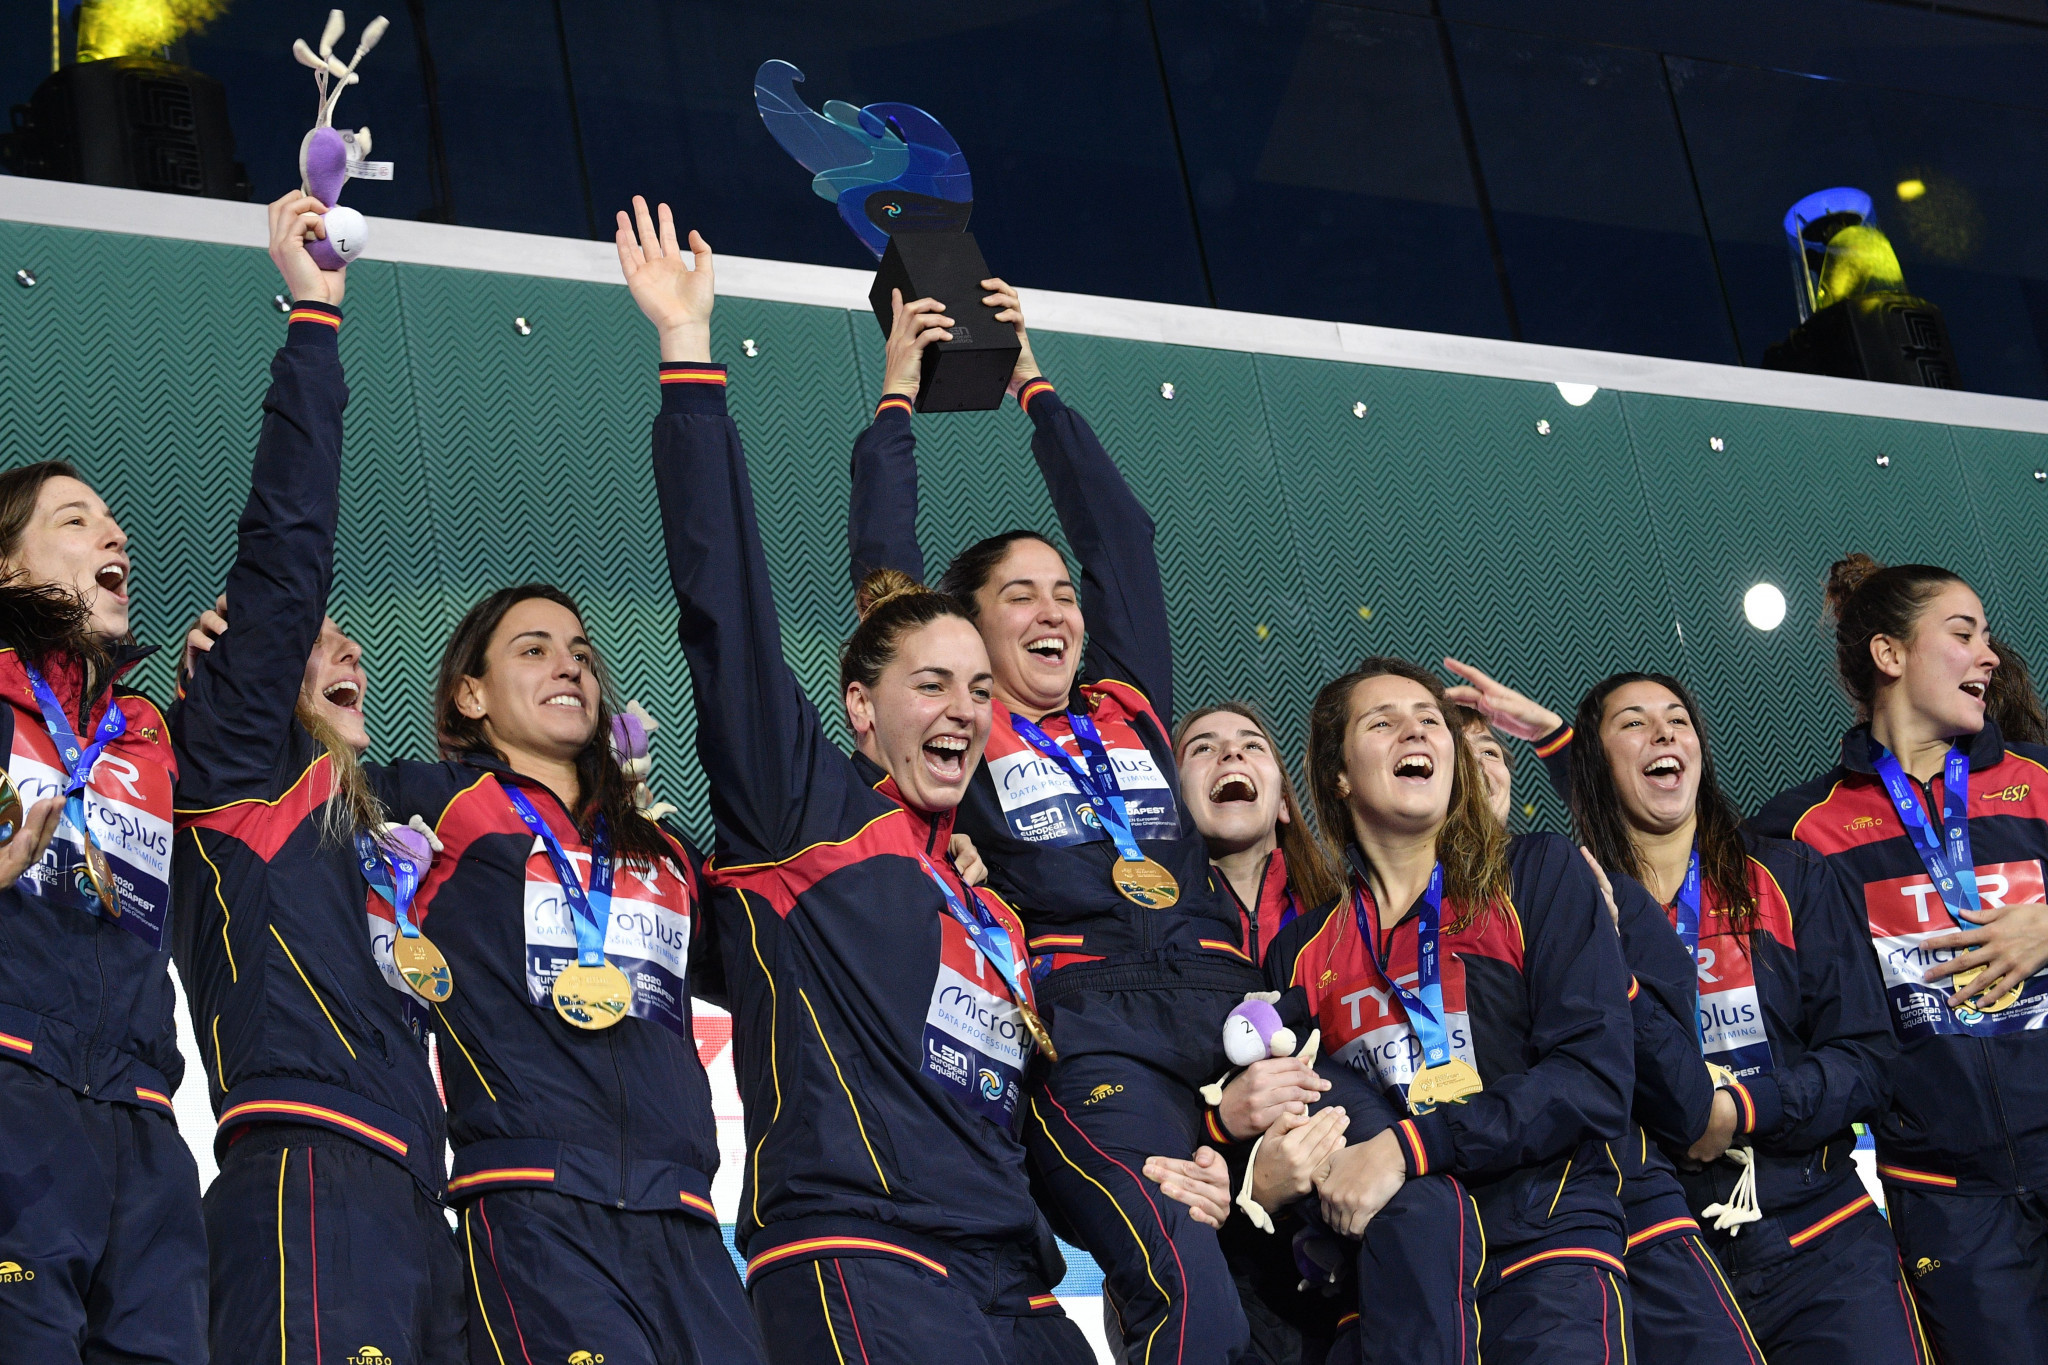 Spain clinch Women's European Water Polo Championship title in dramatic final